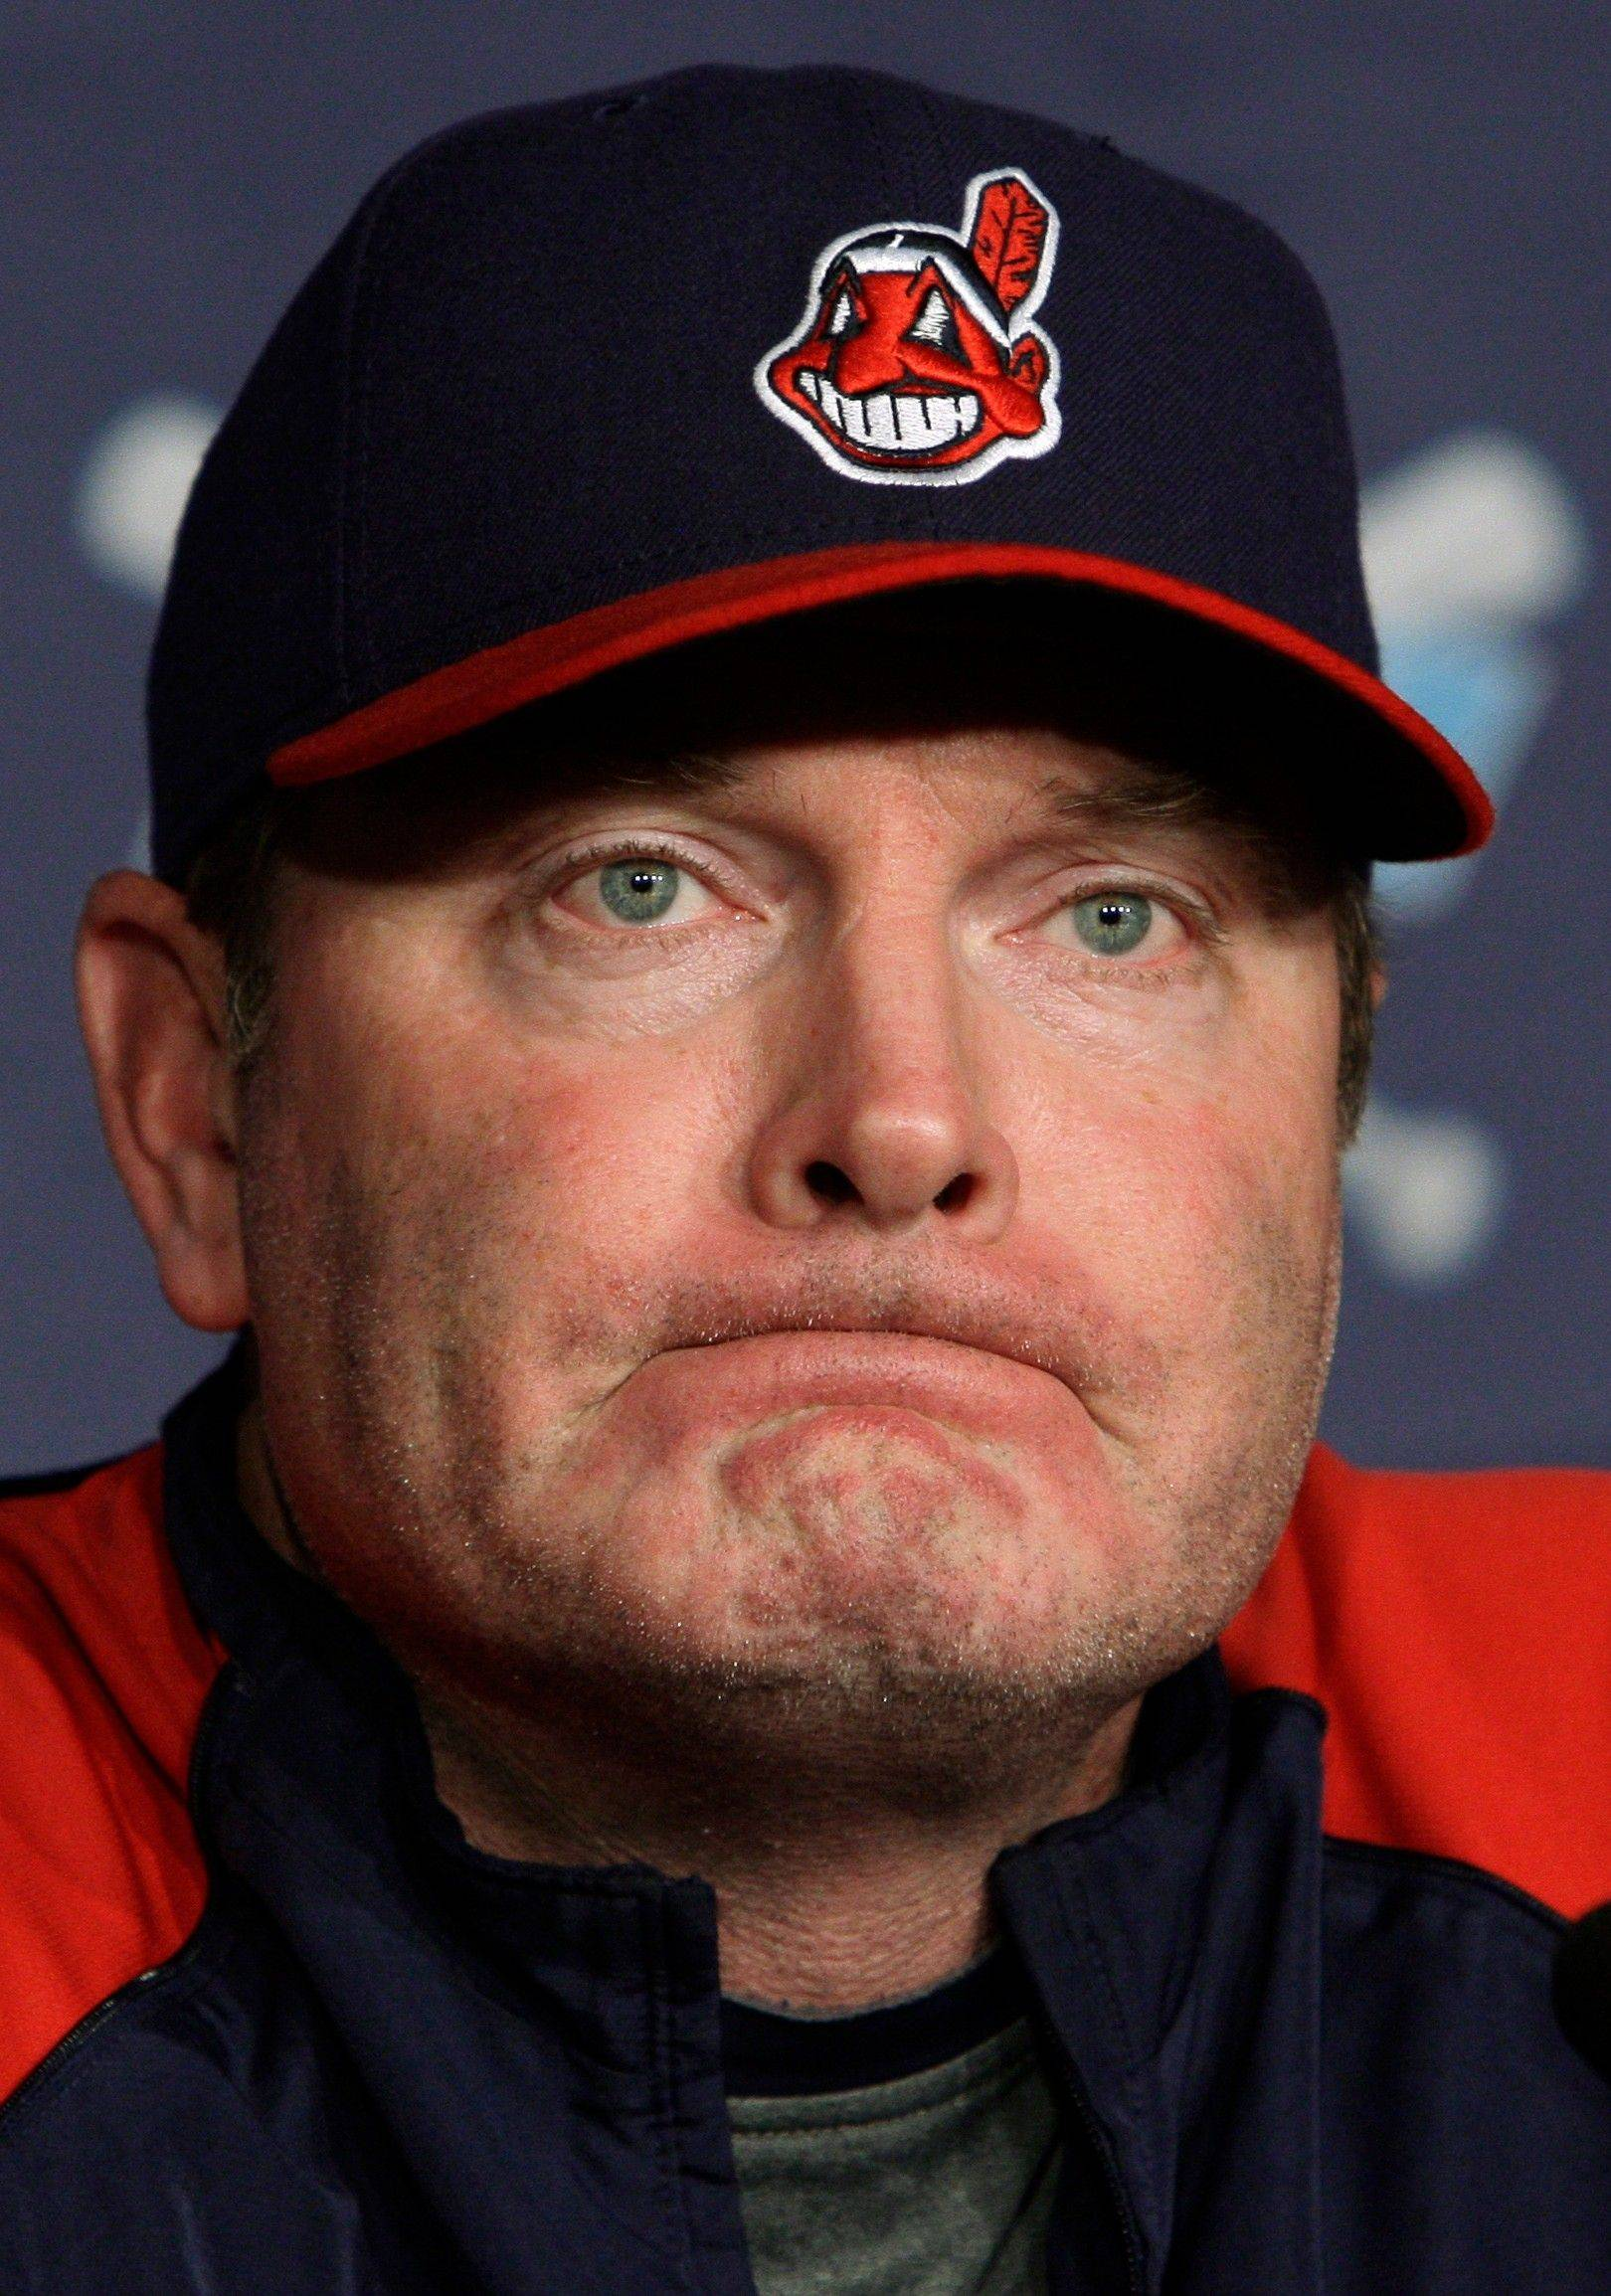 Former Cleveland Indians manager Eric Wedge has been interviewed by Cubs owner Tom Ricketts, according to sources.